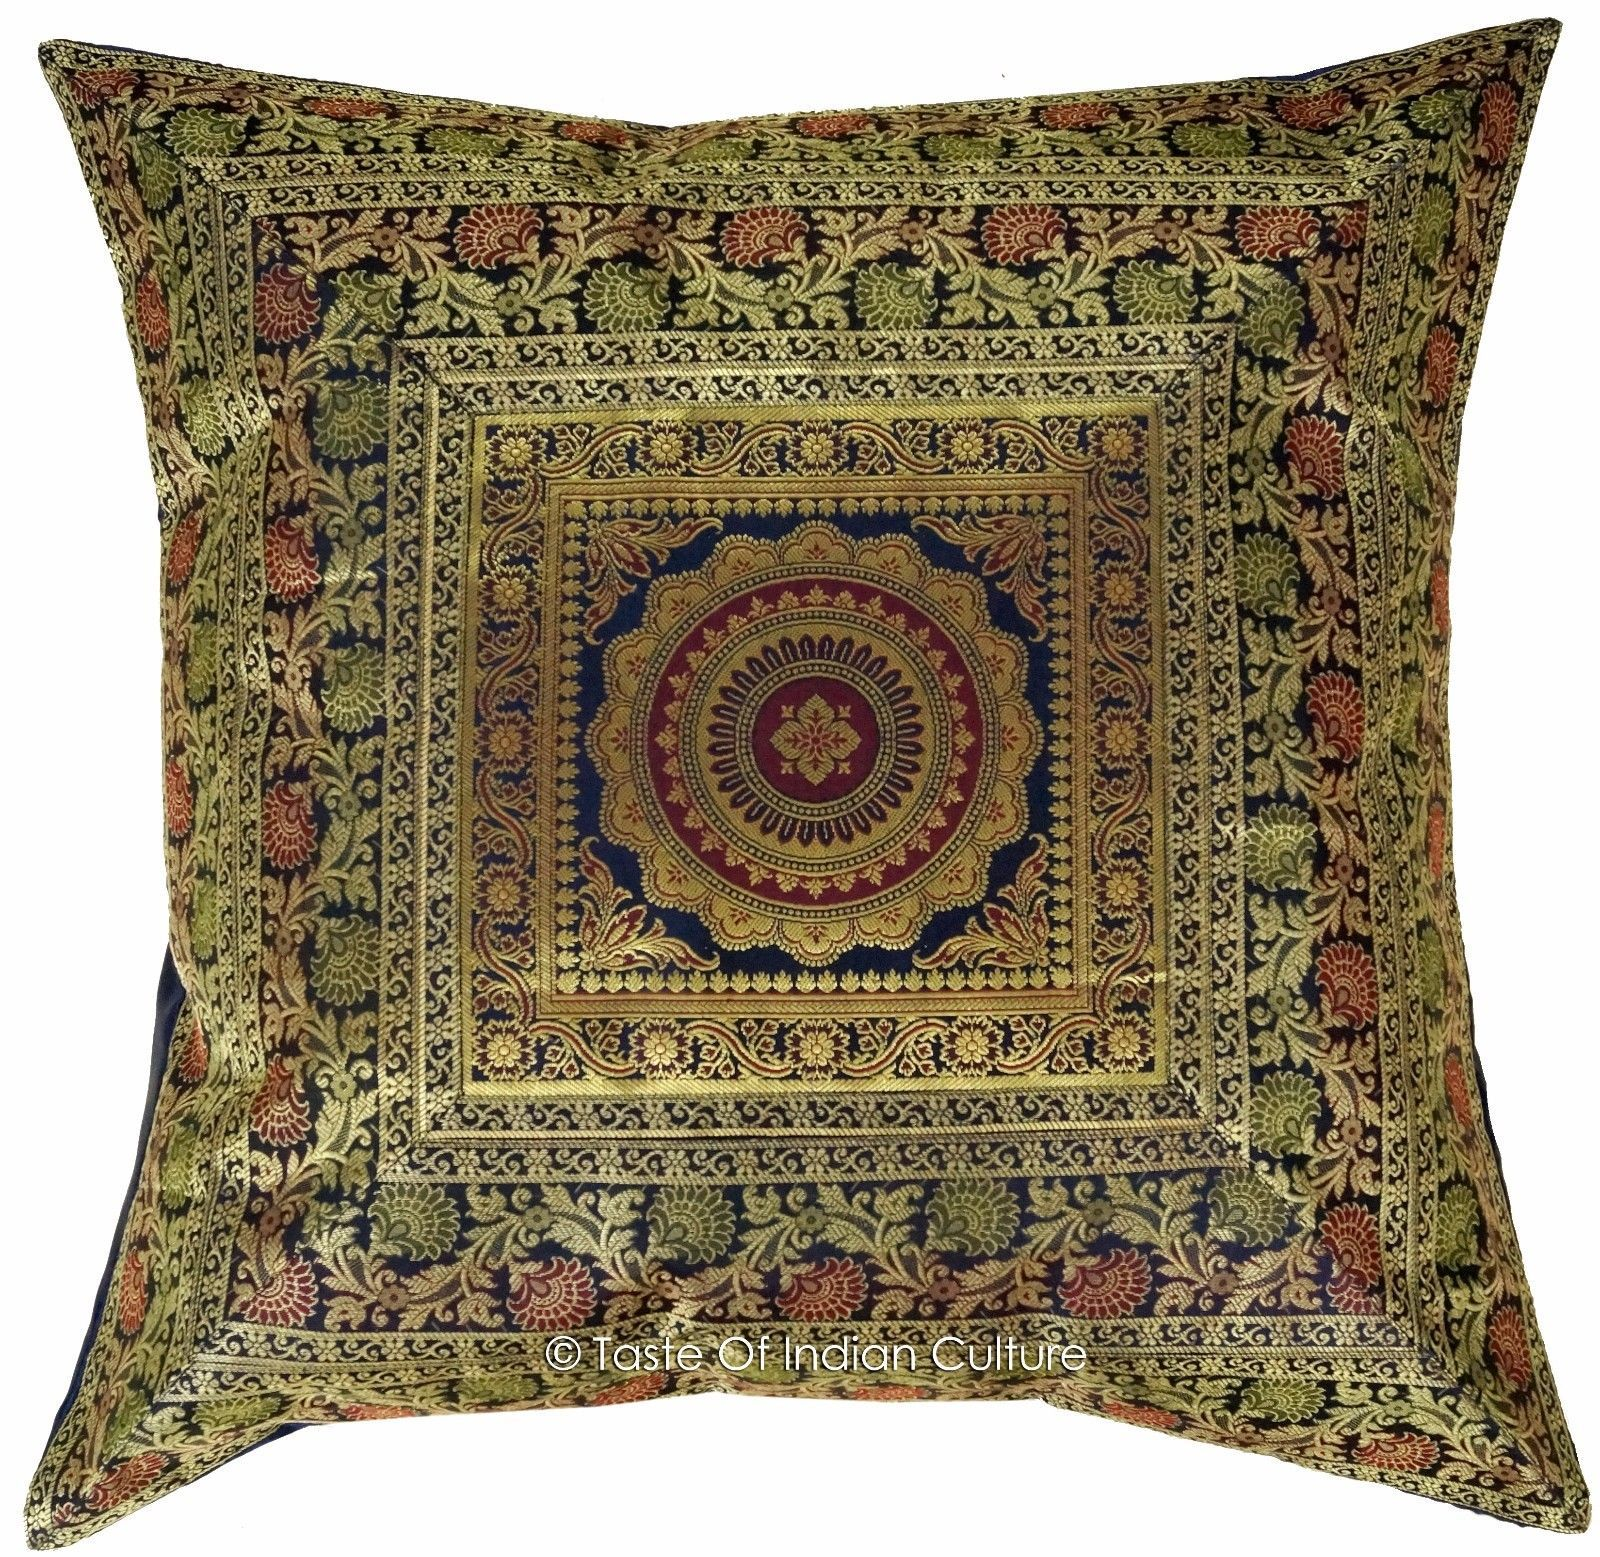 "Primary image for Blue 26"" x 26"" Mandala Euro Sham Pillow Cushion Cover Silk Brocade Throw Indian"